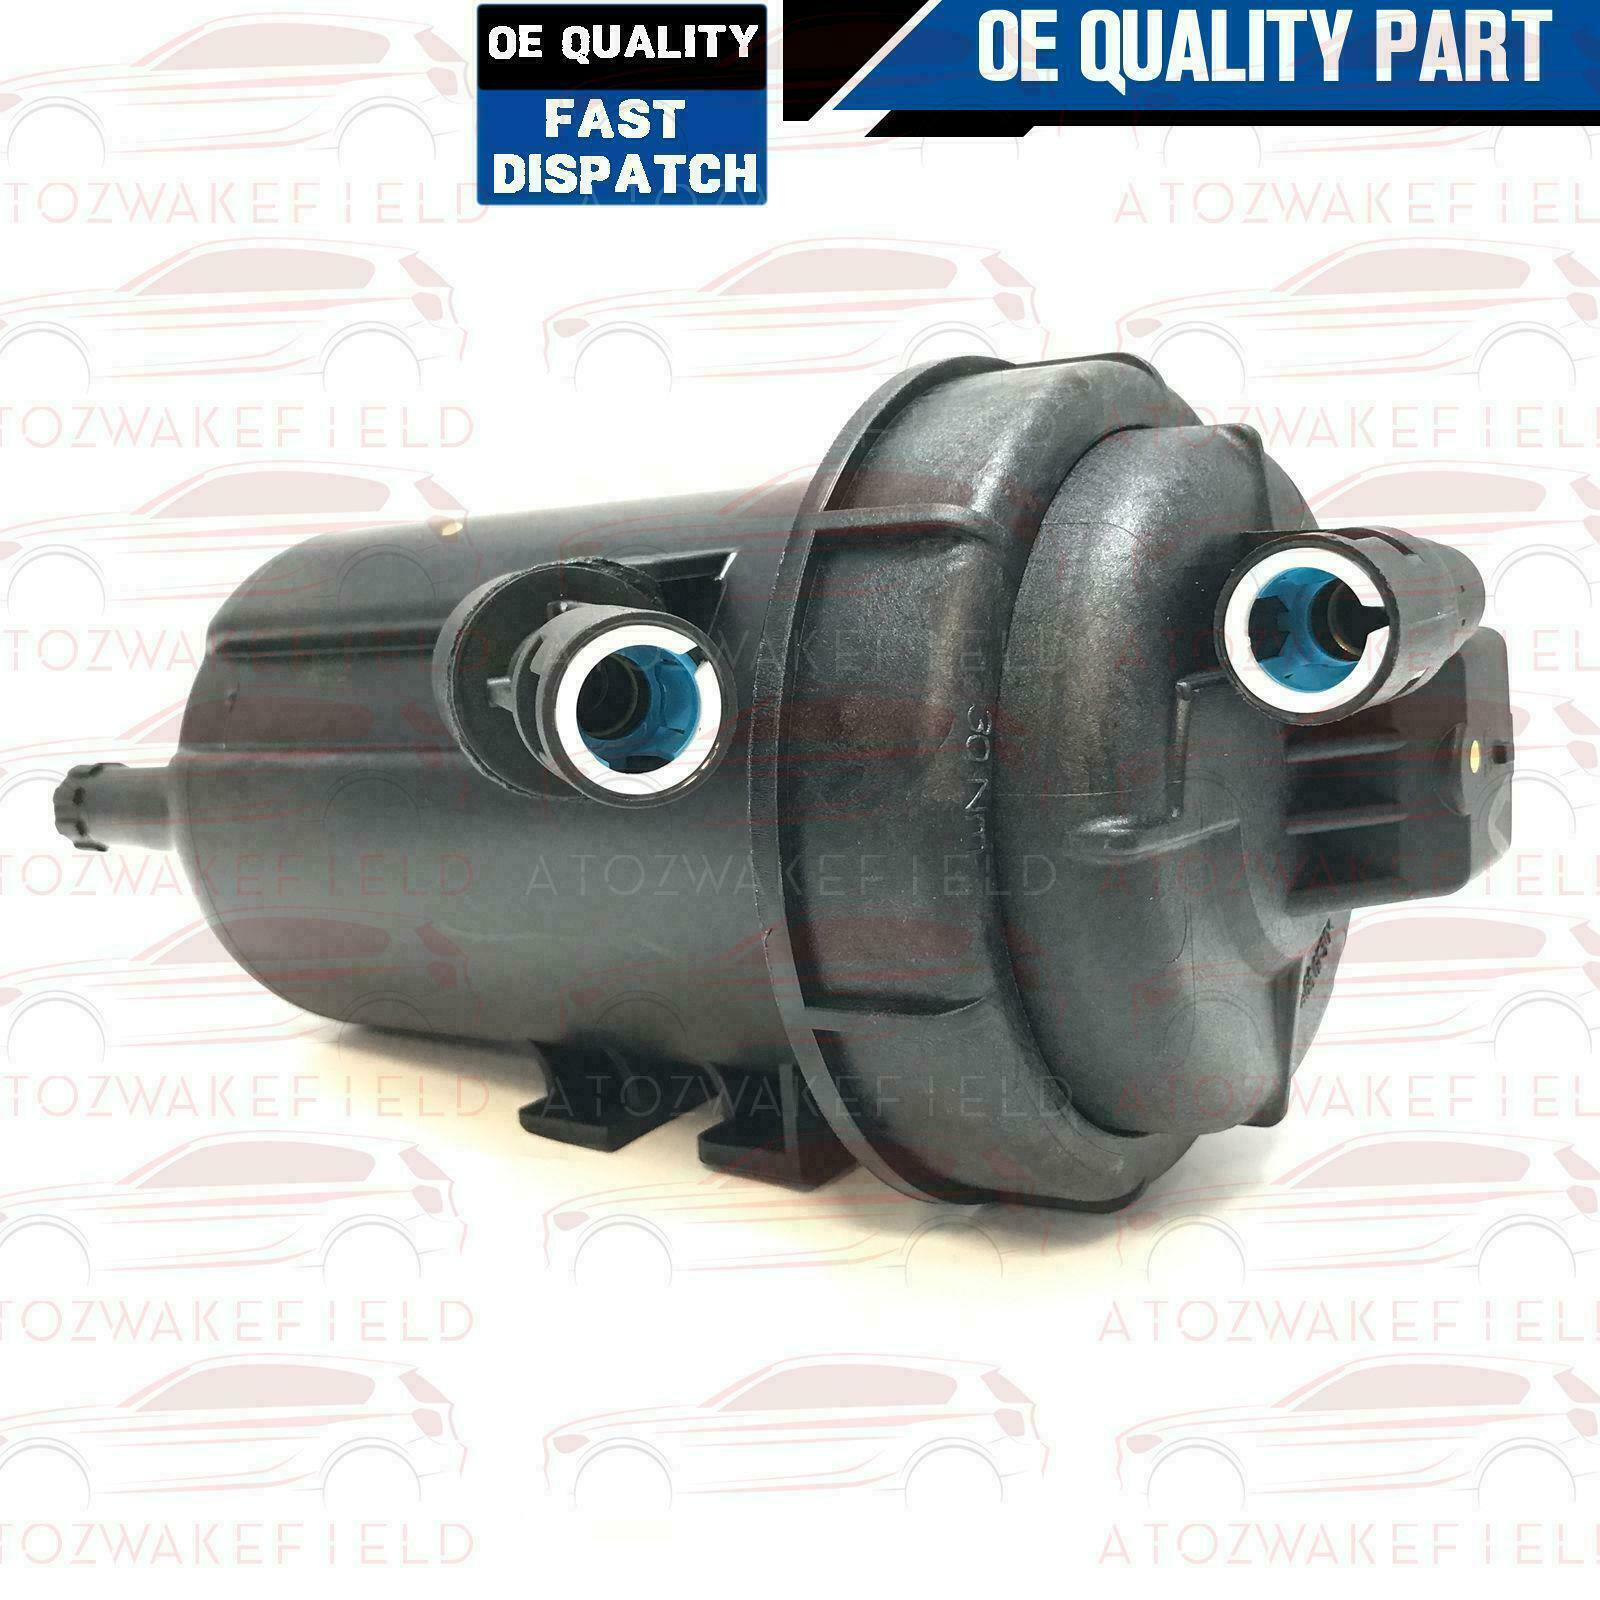 For Vauxhall Astra Signum Vectra 19 Cdti 16v Diesel Fuel Filter Housing 813040 1 Of 7free Shipping See More